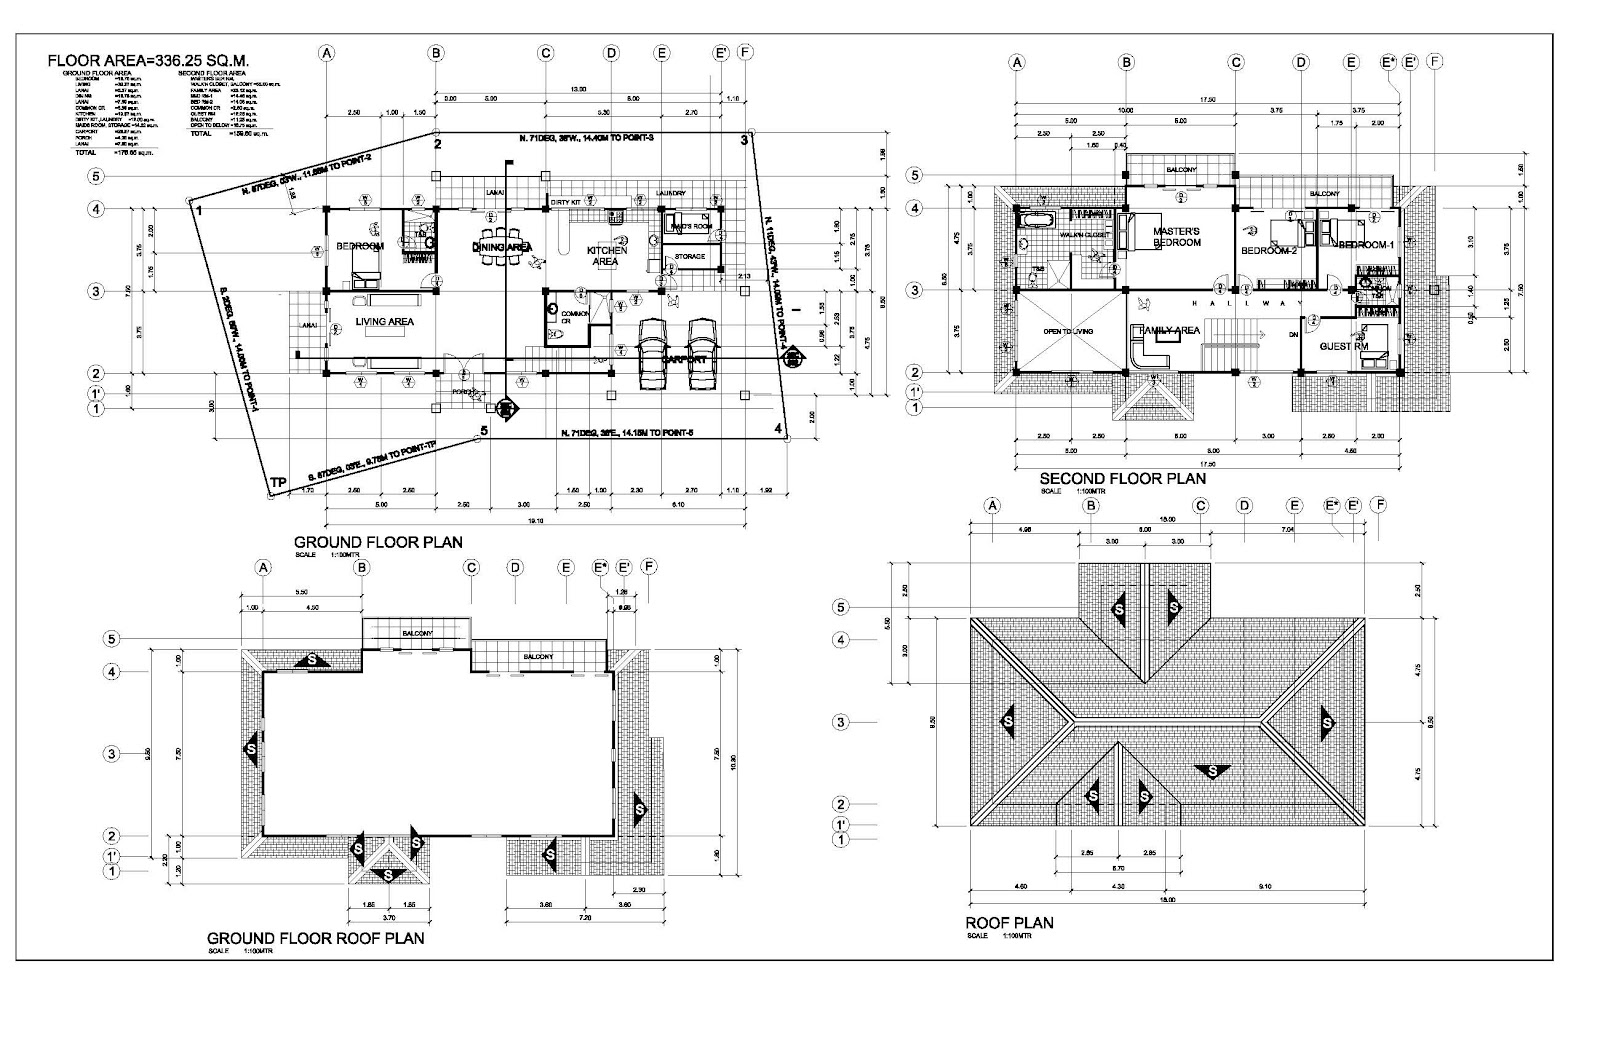 Architecture working drawings: June 2012